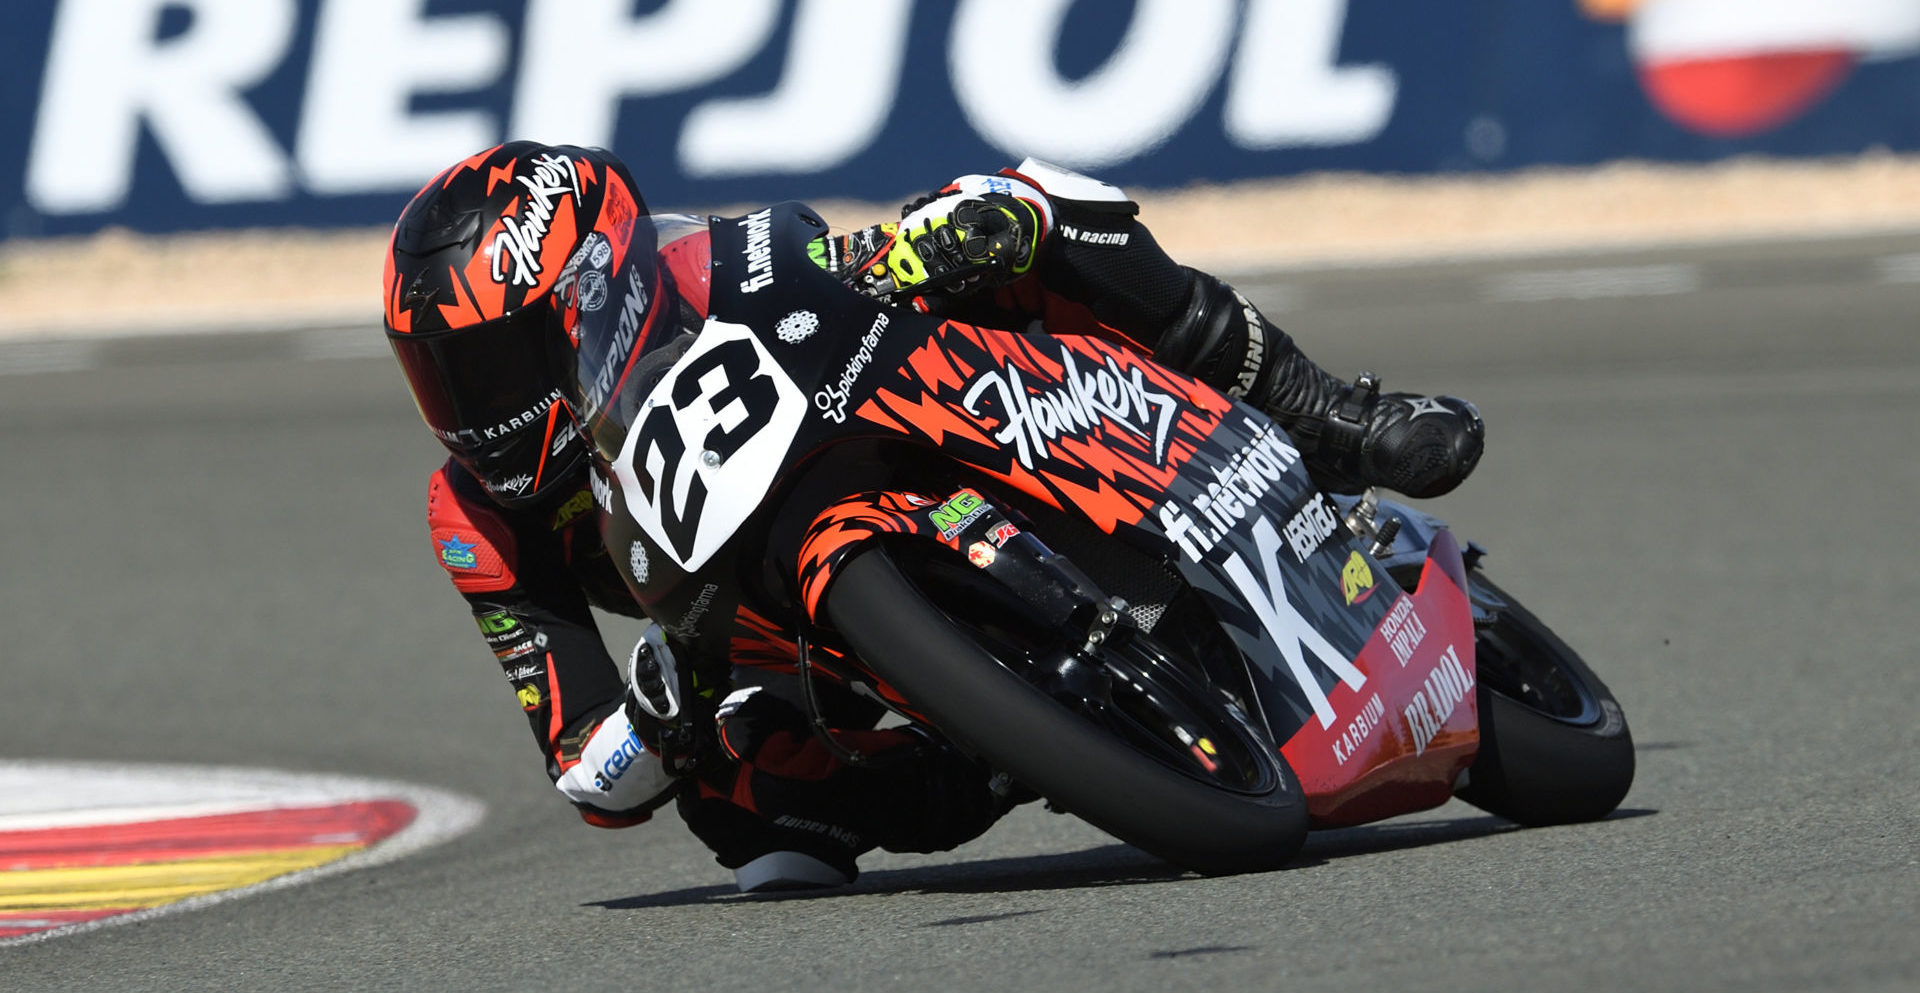 The European Talent Cup will now be known as Hawkers European Talent Cup. Photo courtesy of Dorna.